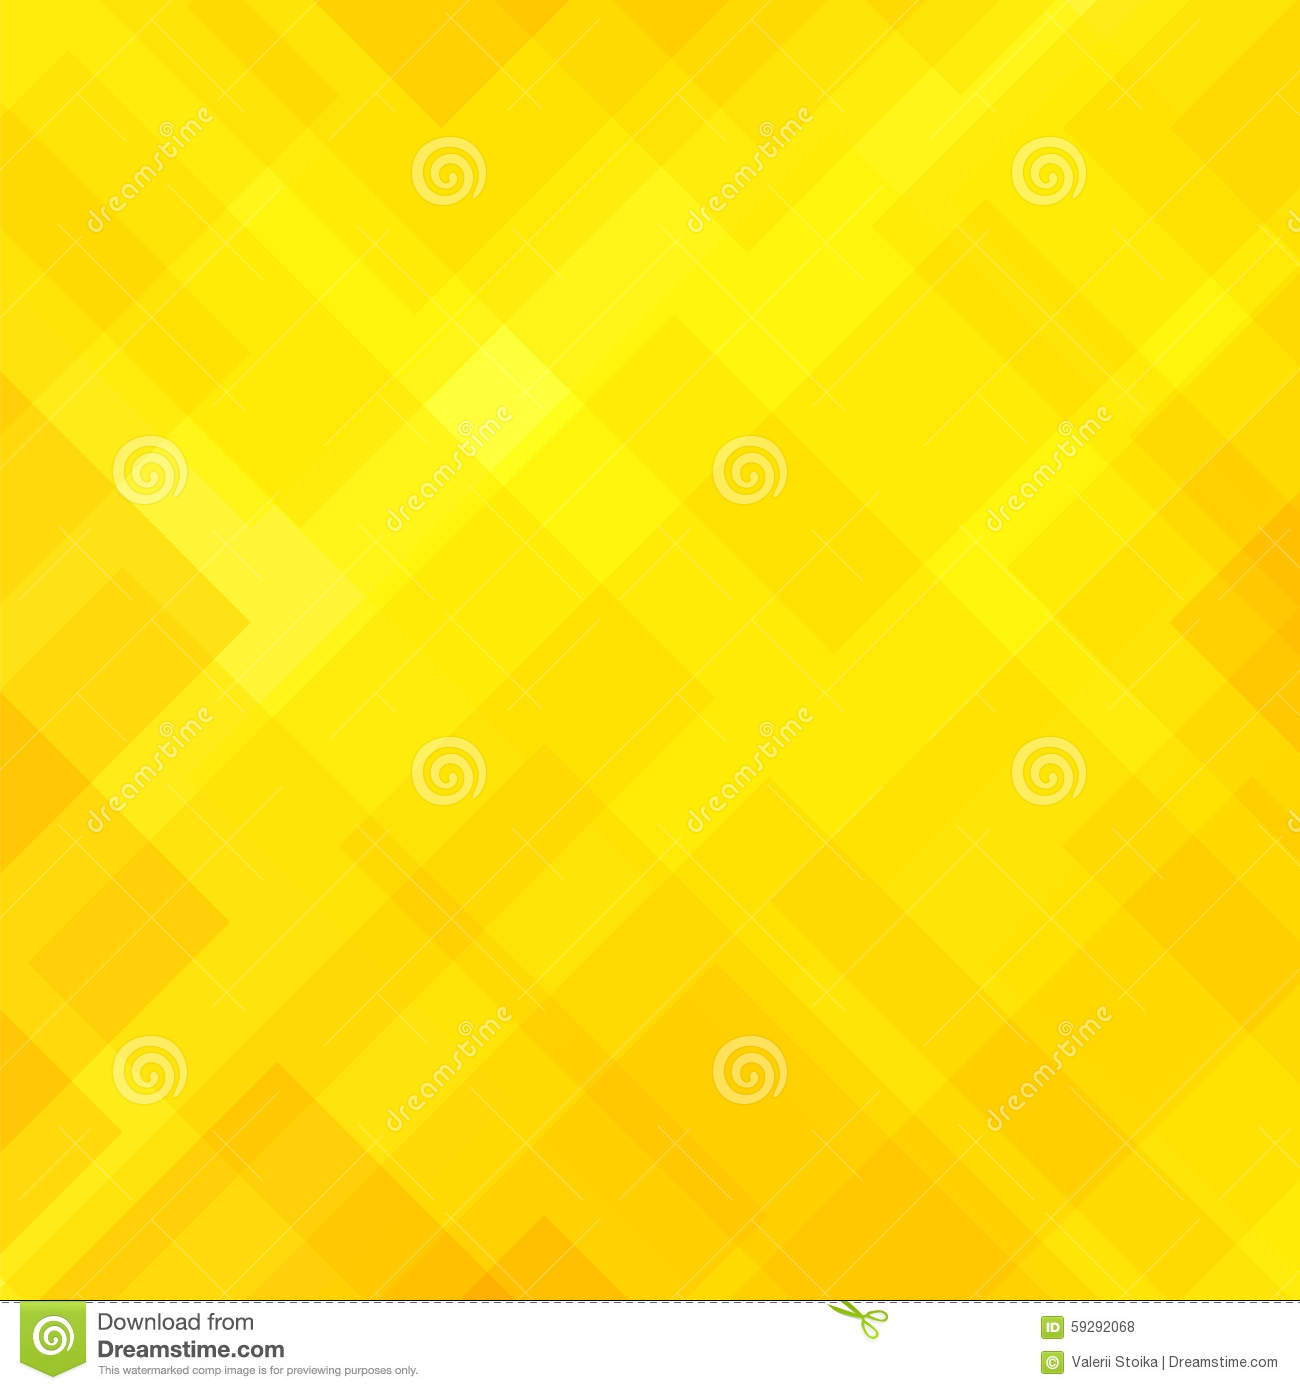 abstract elegant yellow background stock vector